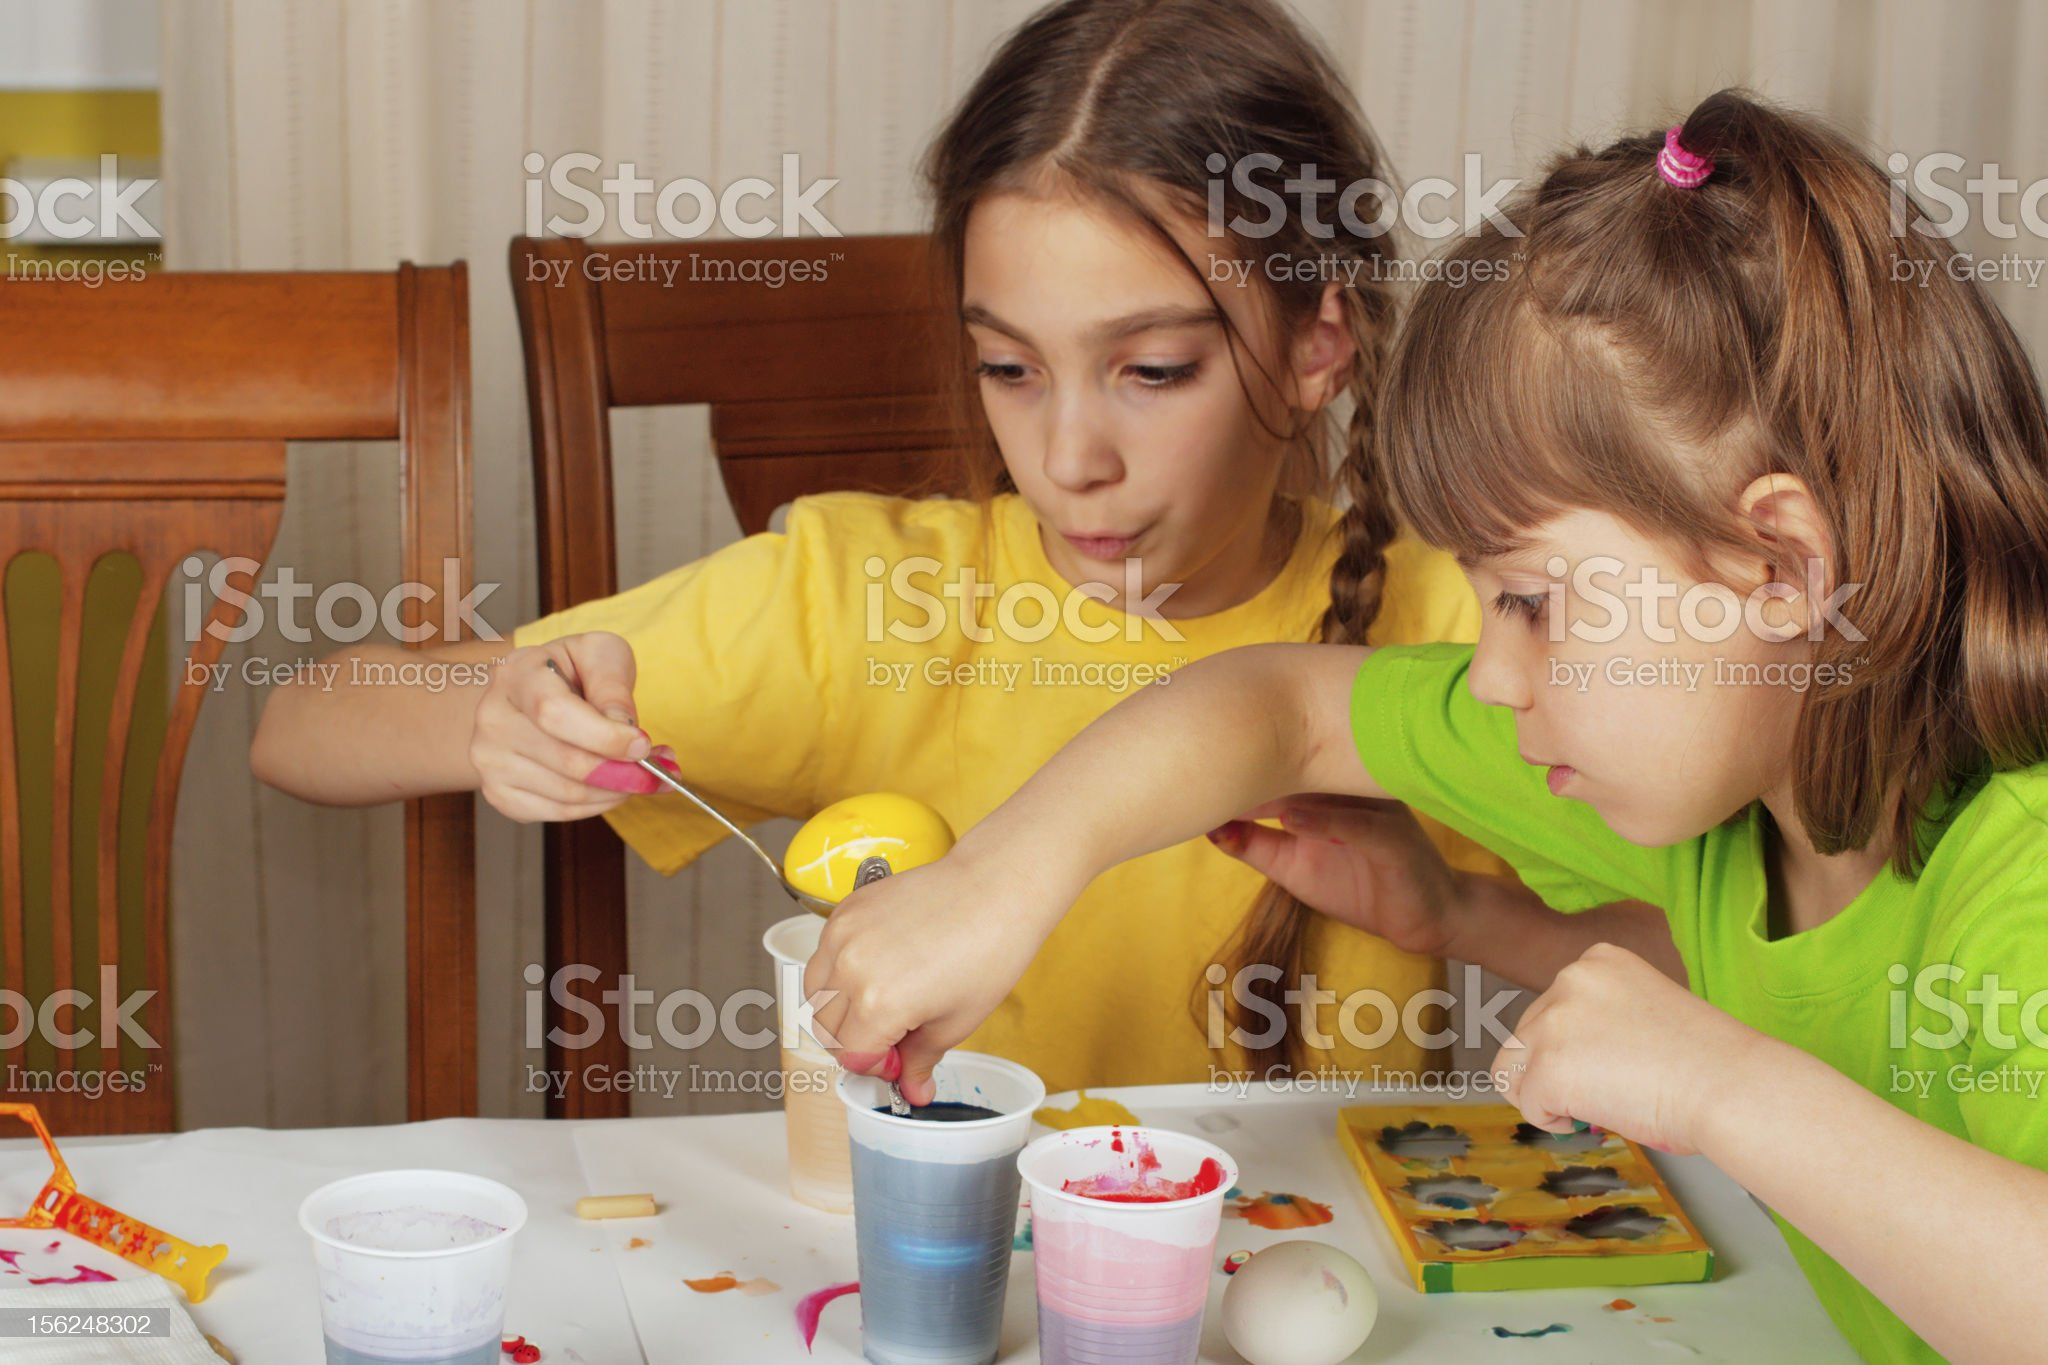 Two little girls (sisters) painting on Easter eggs royalty-free stock photo